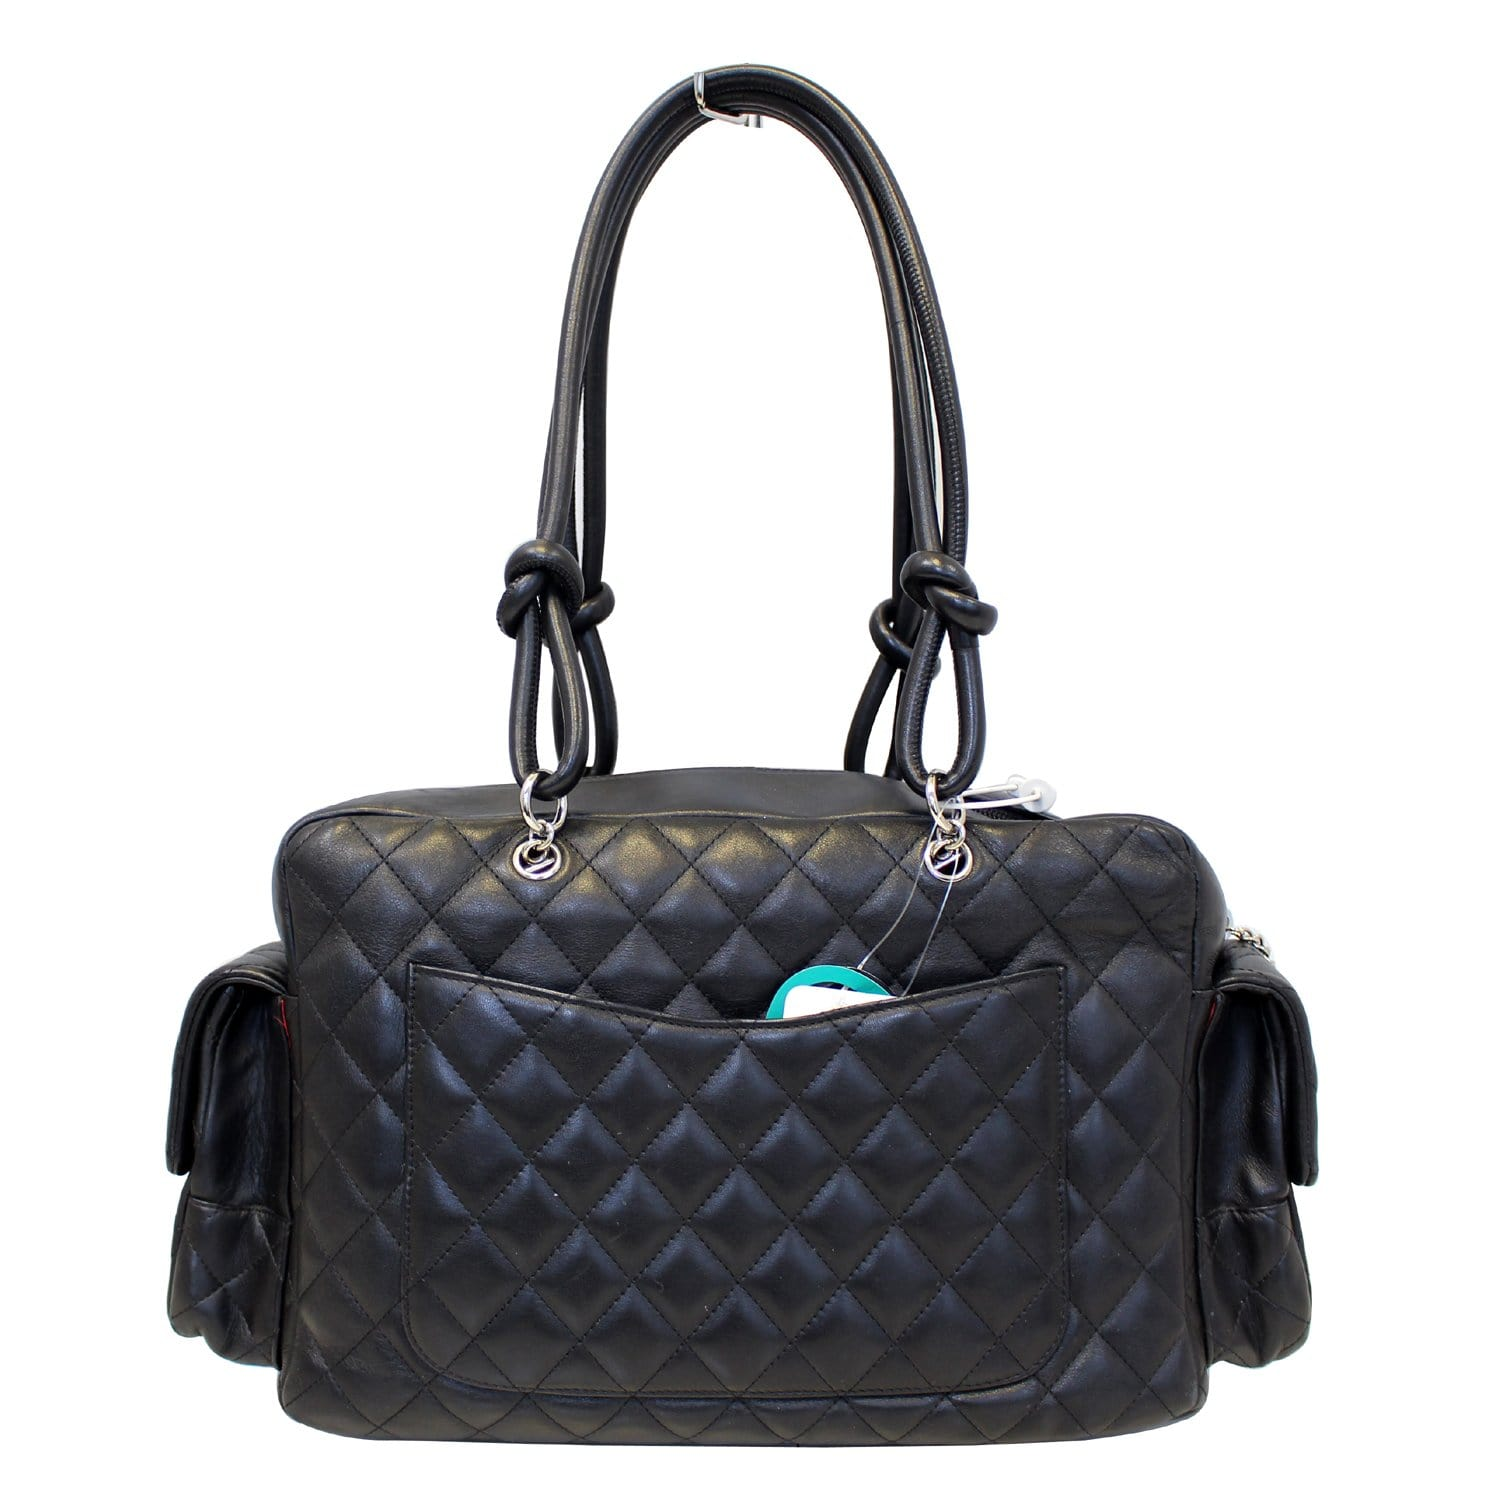 c2225a09e98d CHANEL Black Quilted Leather Ligne Cambon Reporter Shoulder Bag-US ...